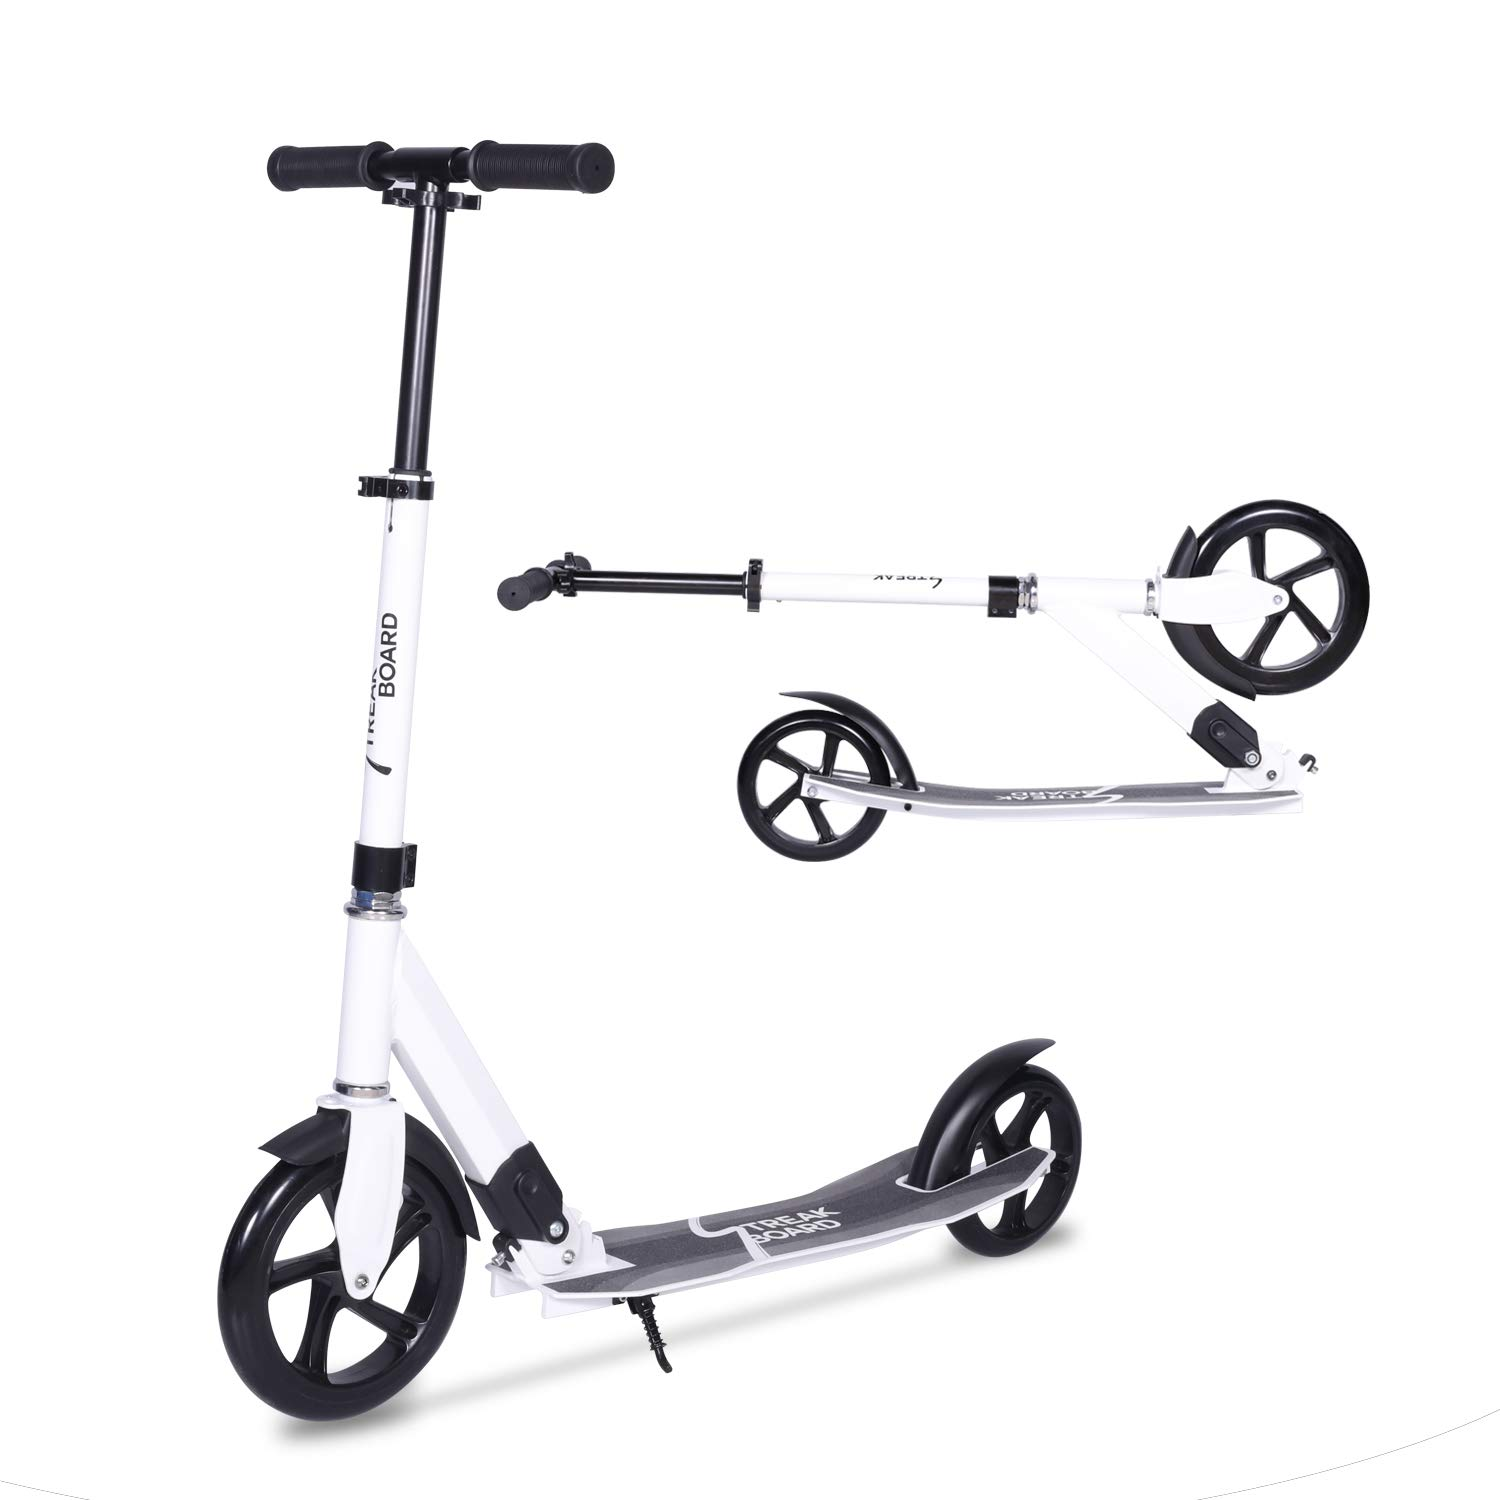 streakboard Kick Scooter Adult Teen Adjustable Foldable Scooter with Shoulder Strap, Rear Fender Brake, 230mm Big Wheels Aluminum Alloy Commuter Scooter for Kids Age 8 Up (White) by streakboard